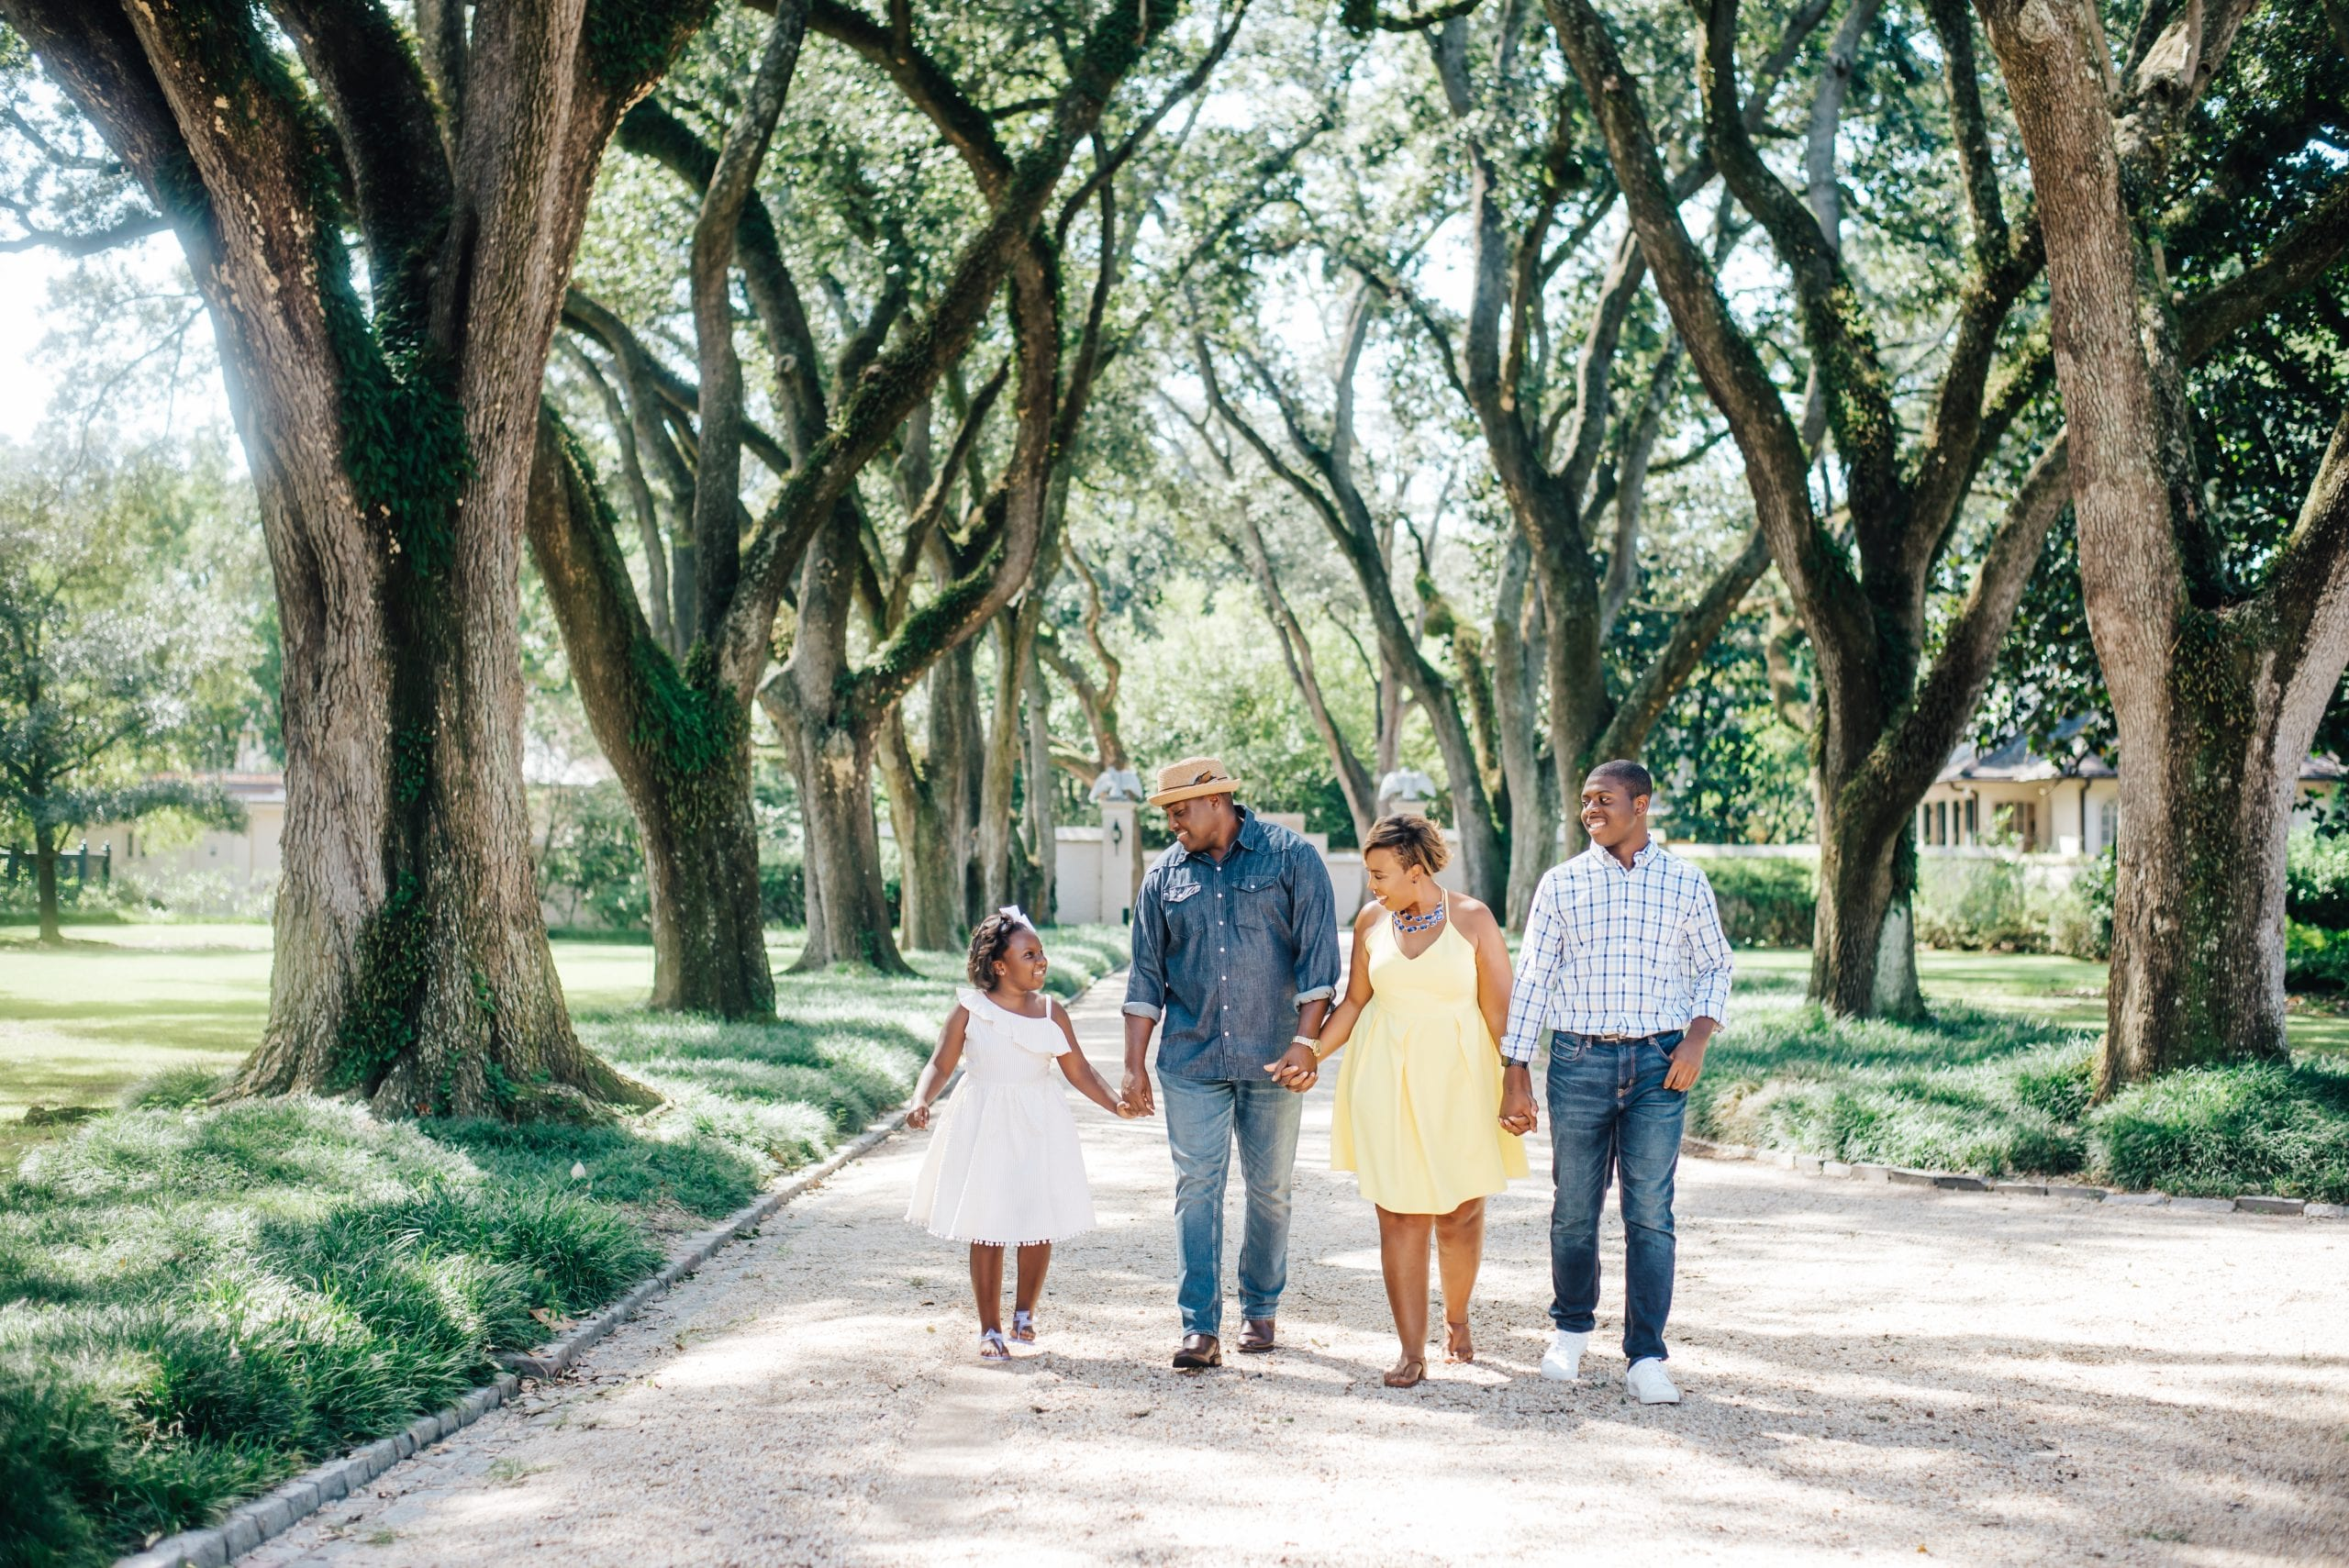 Family photos in a garden in New Orleans